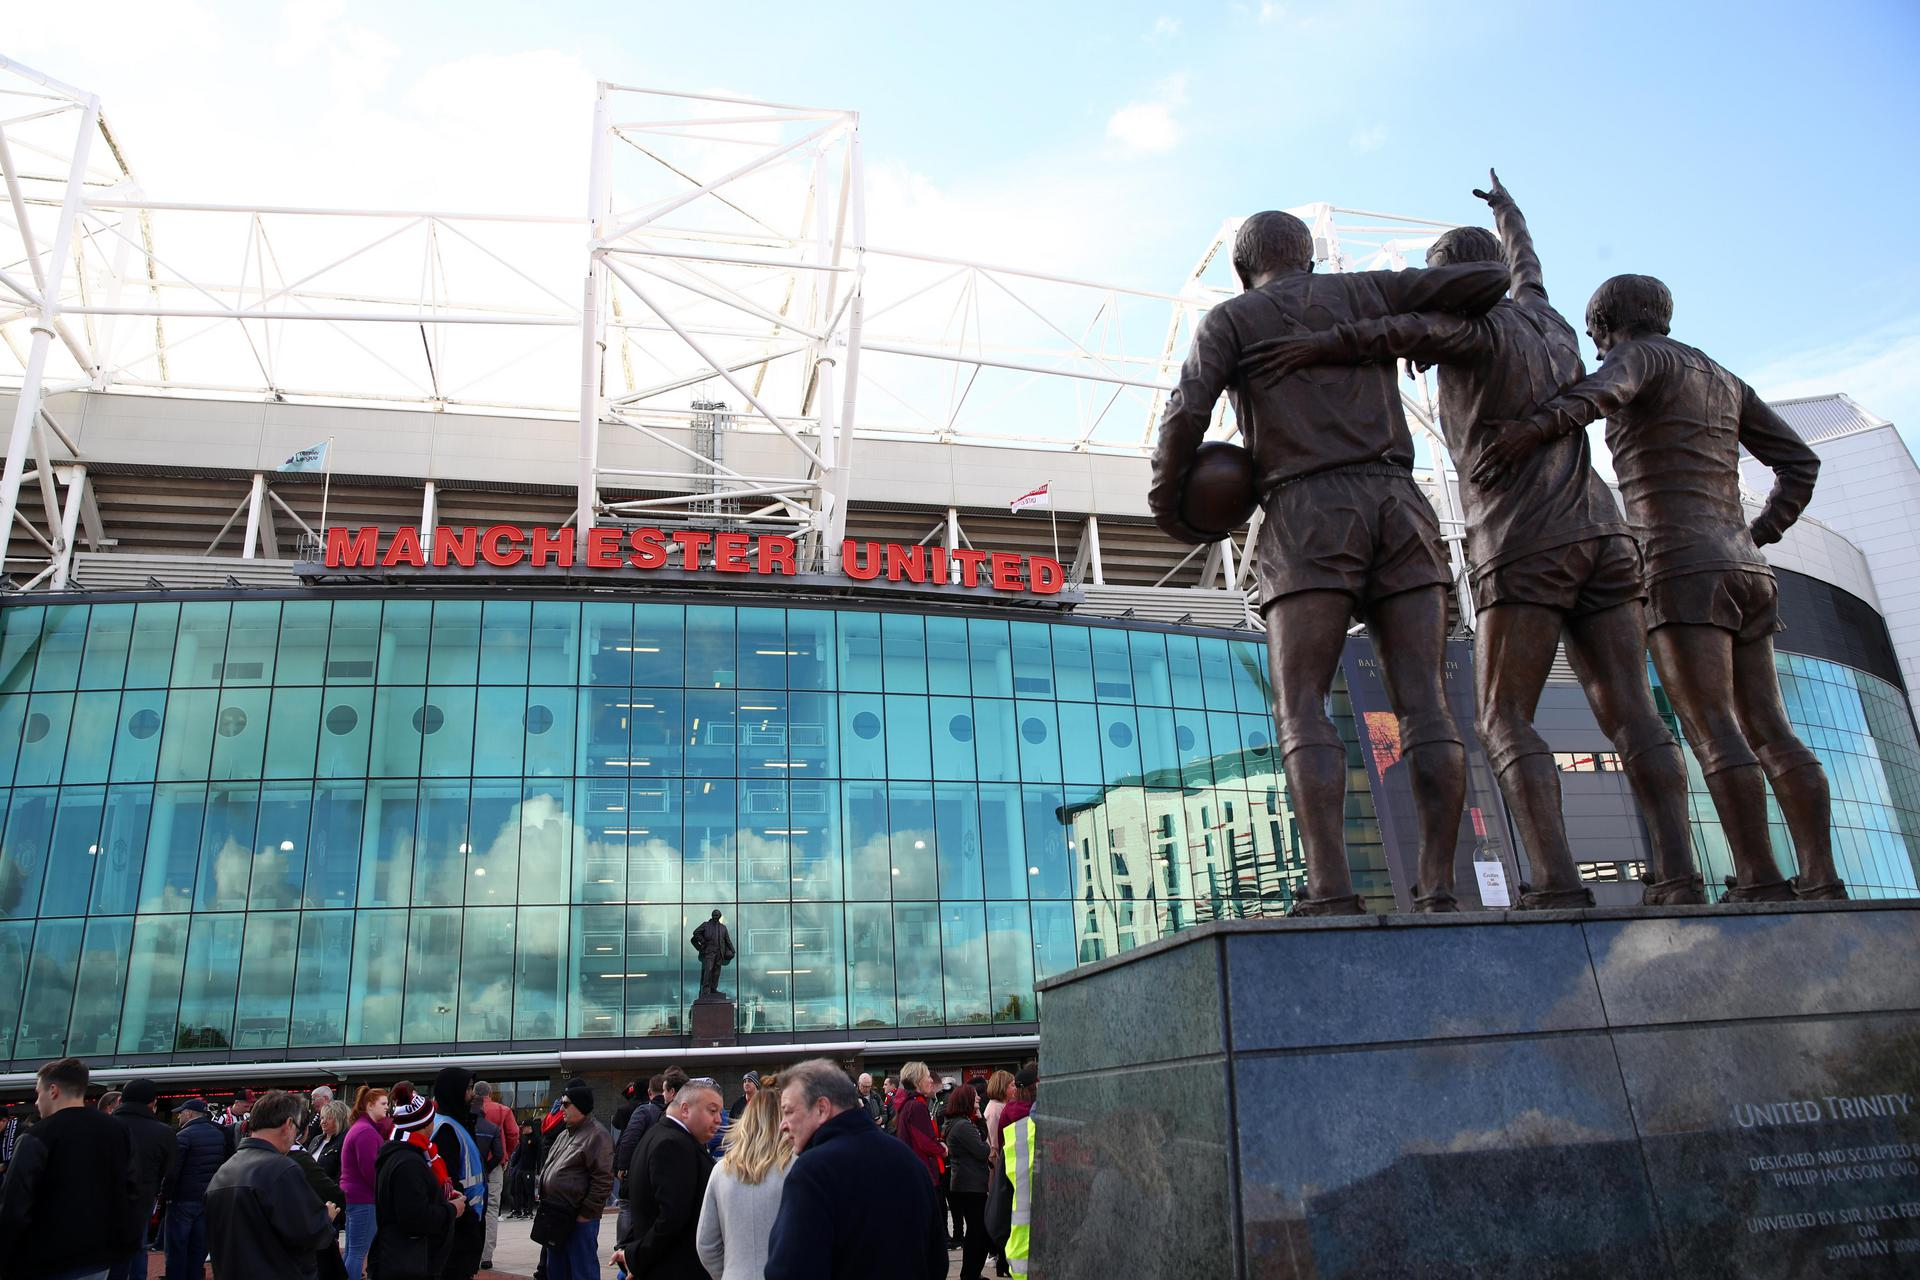 External view of the East Stand at Old Trafford, from behind the Best-Law-Charlton statue.